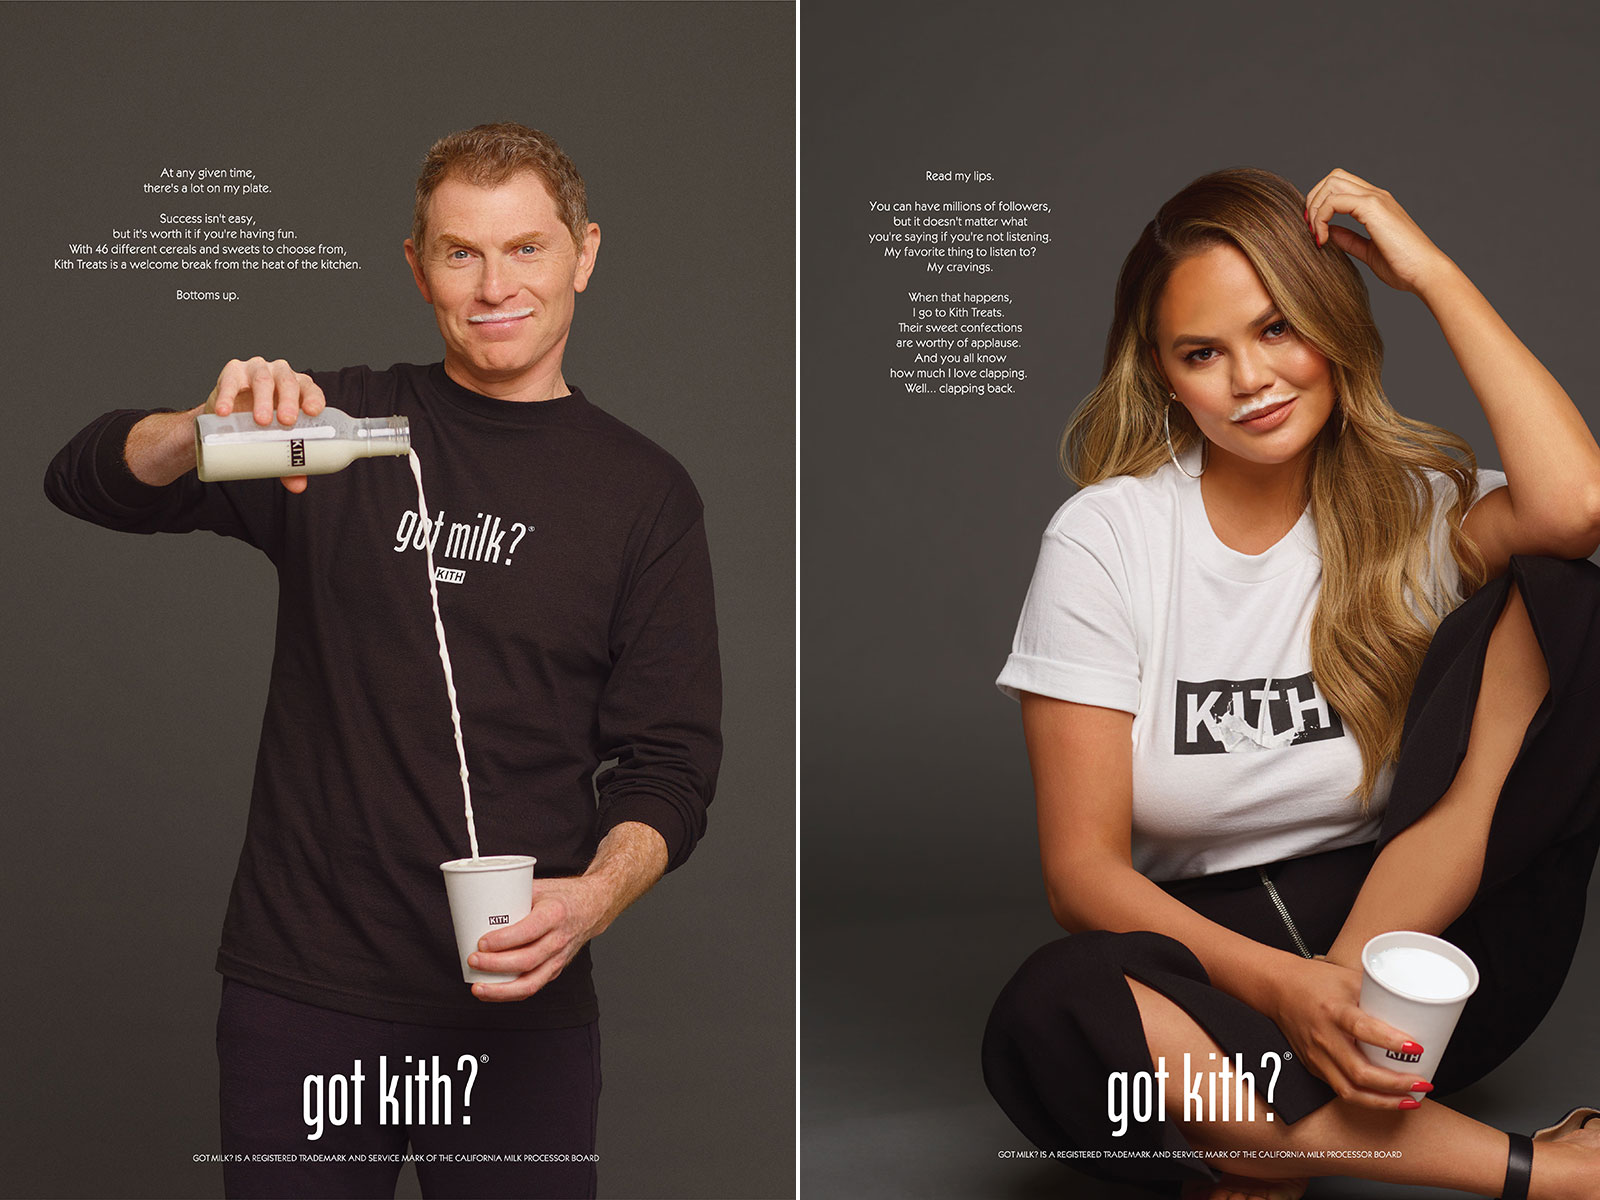 Those Iconic 'Got Milk?' Ads Are Back... With a Twist